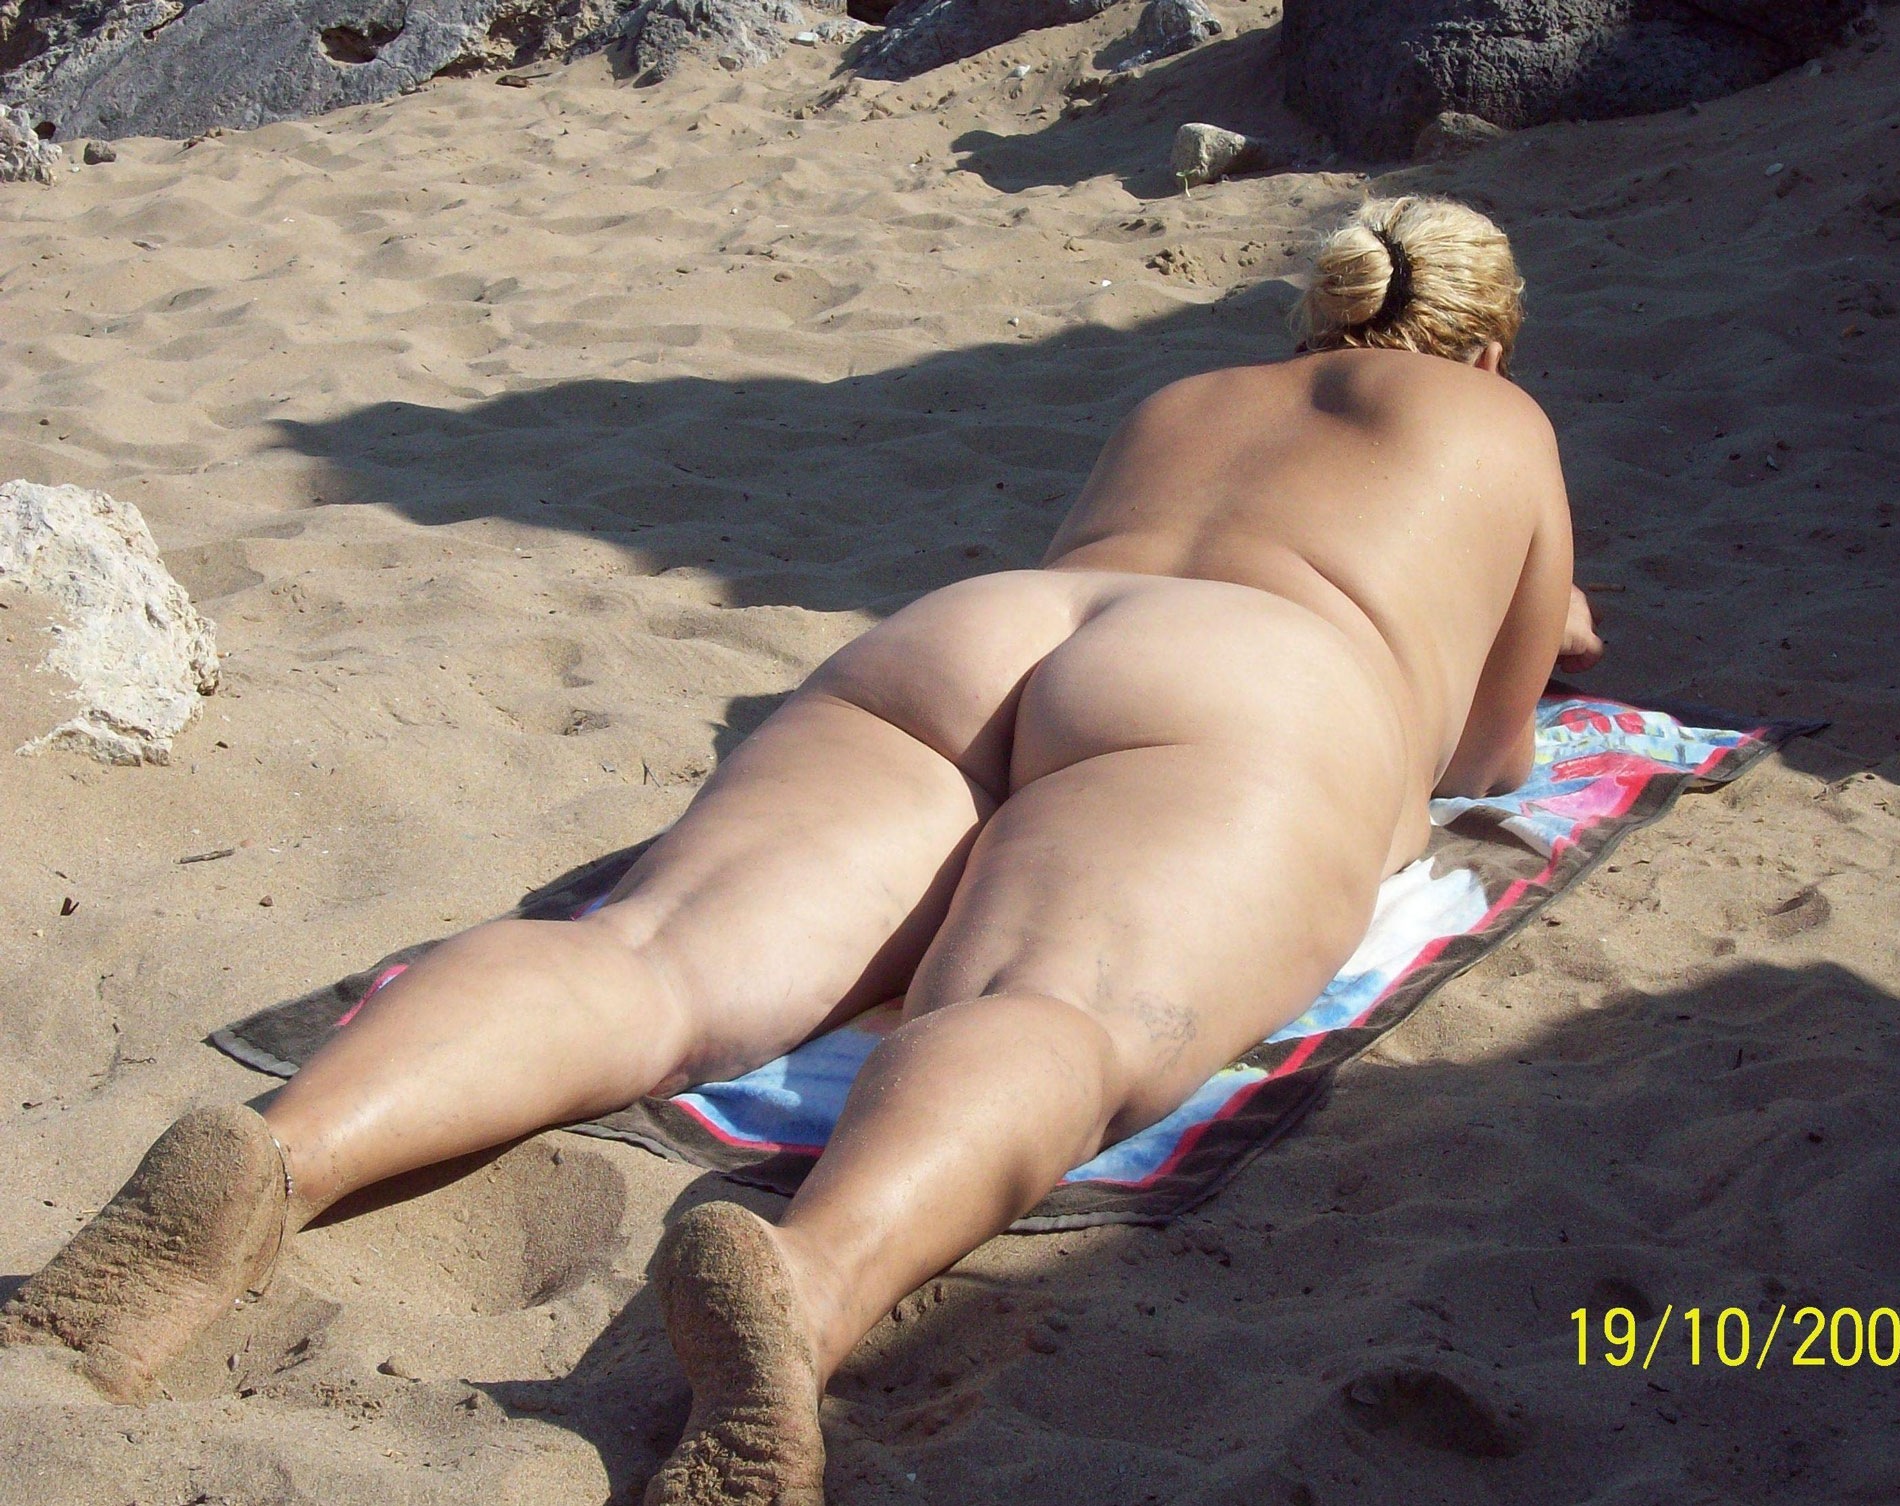 Bbw on nude beach share your